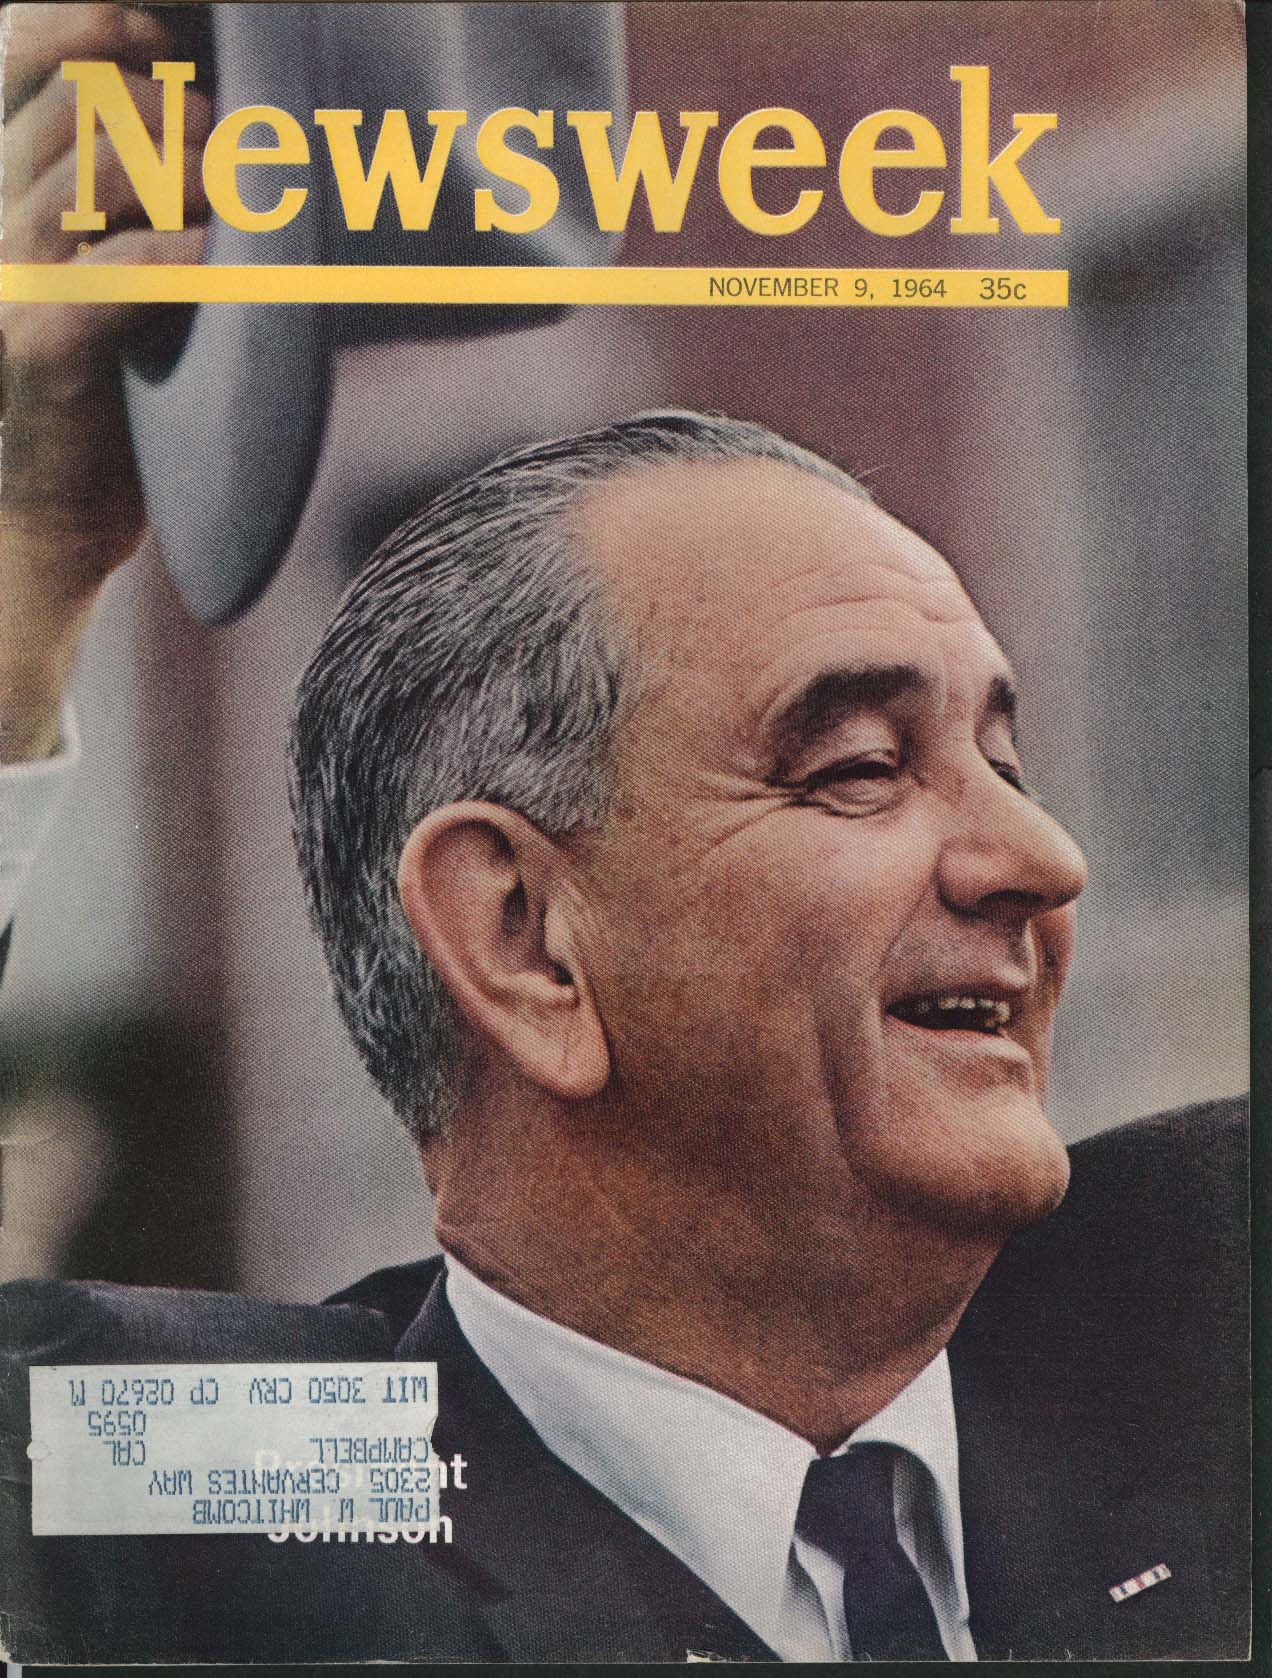 NEWSWEEK Lyndon Johnson Election IBM 7010 11/9 1964